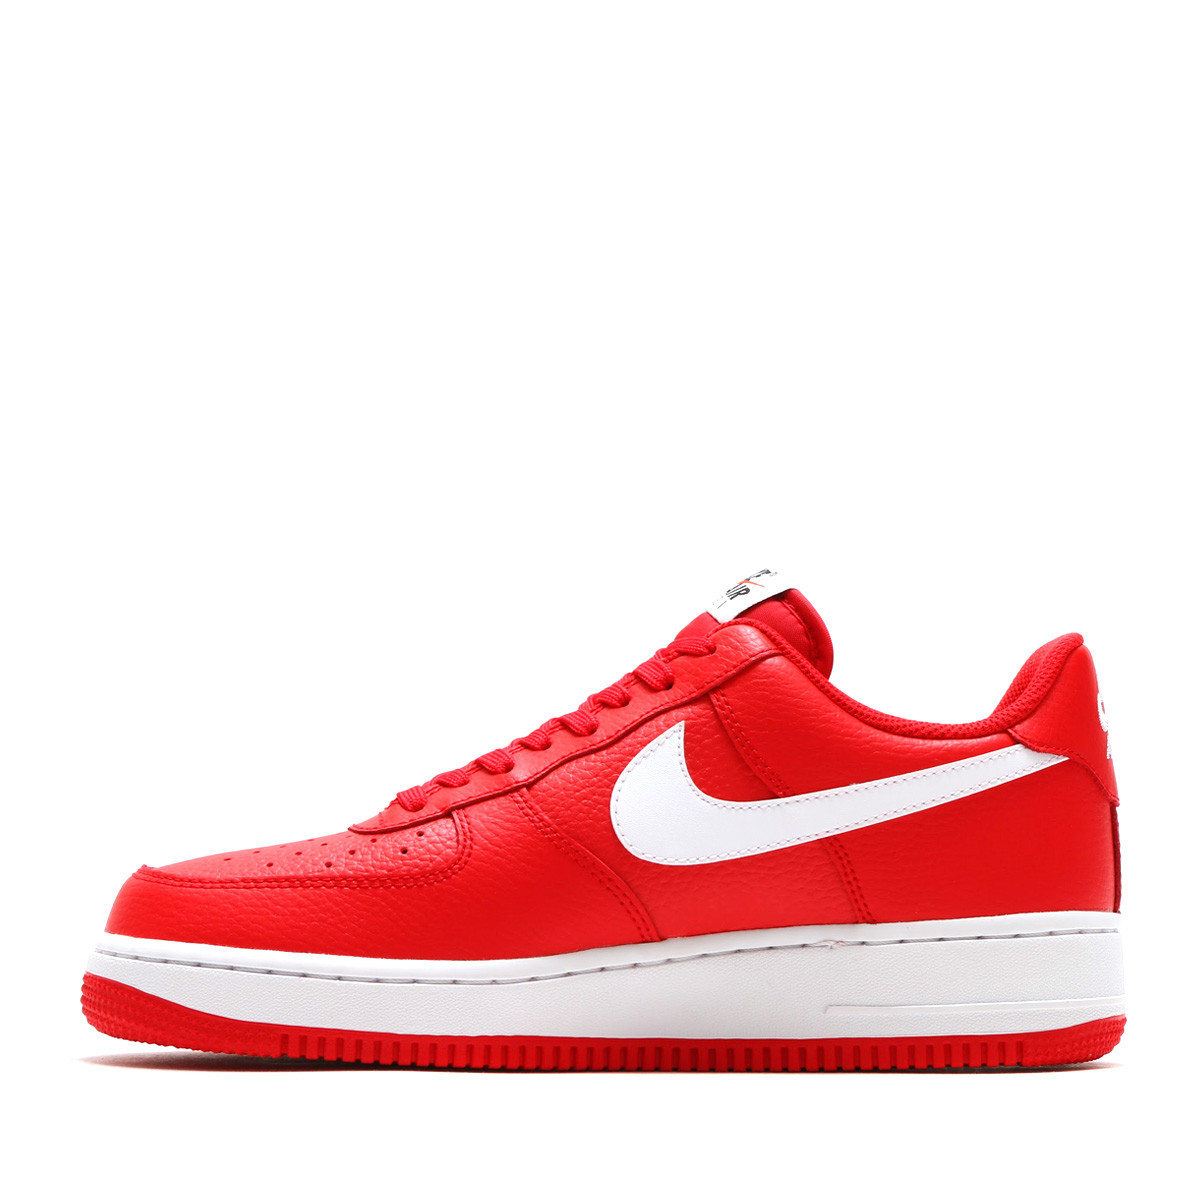 separation shoes d17bc ca2a1 Basket Nike Air Force 1 Low - Ref. 820266-606. Loading zoom